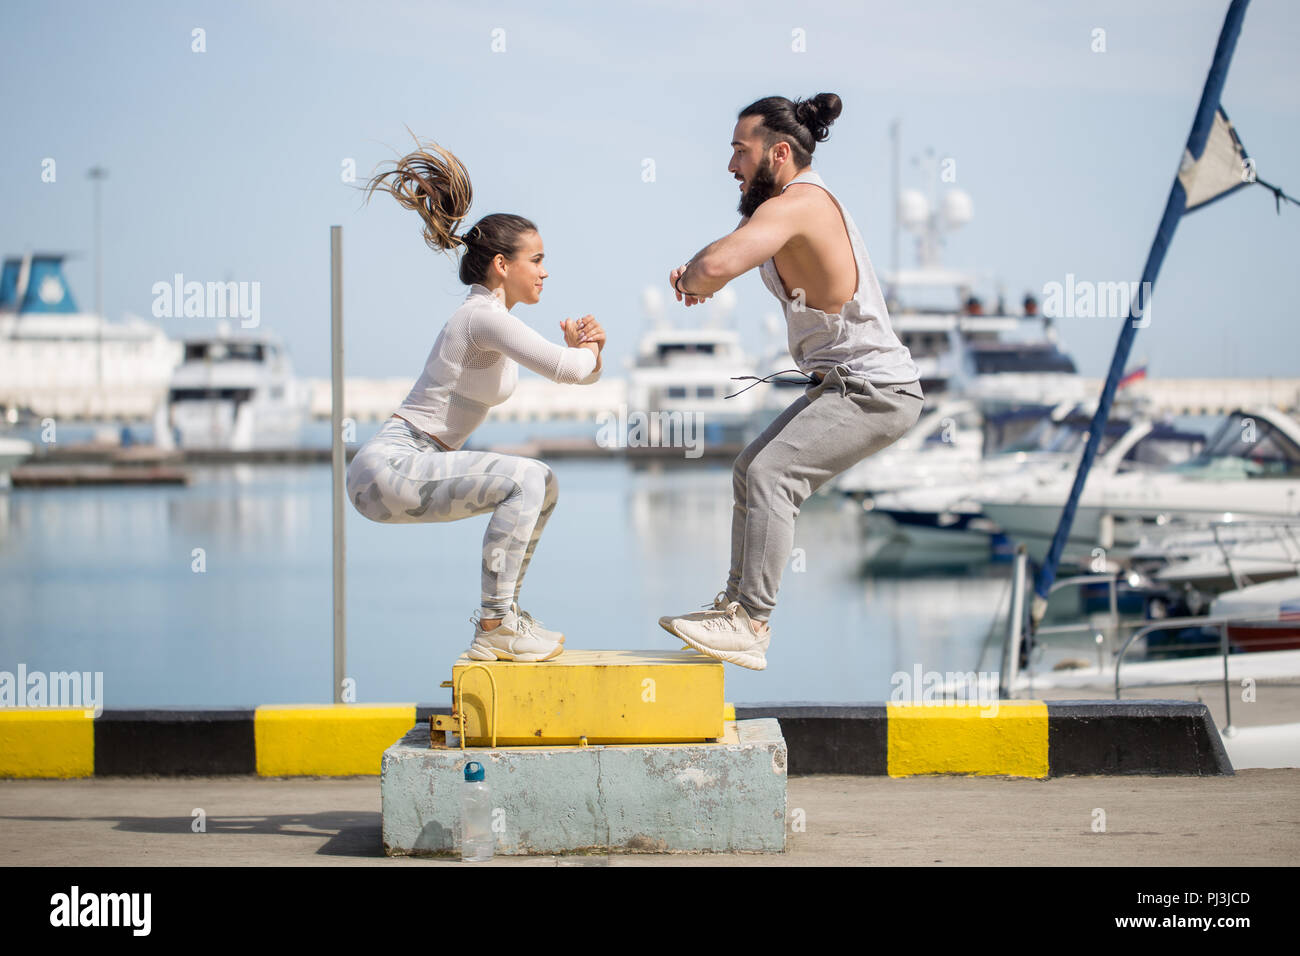 Female and male athlete is performing box jumps outdoor. - Stock Image